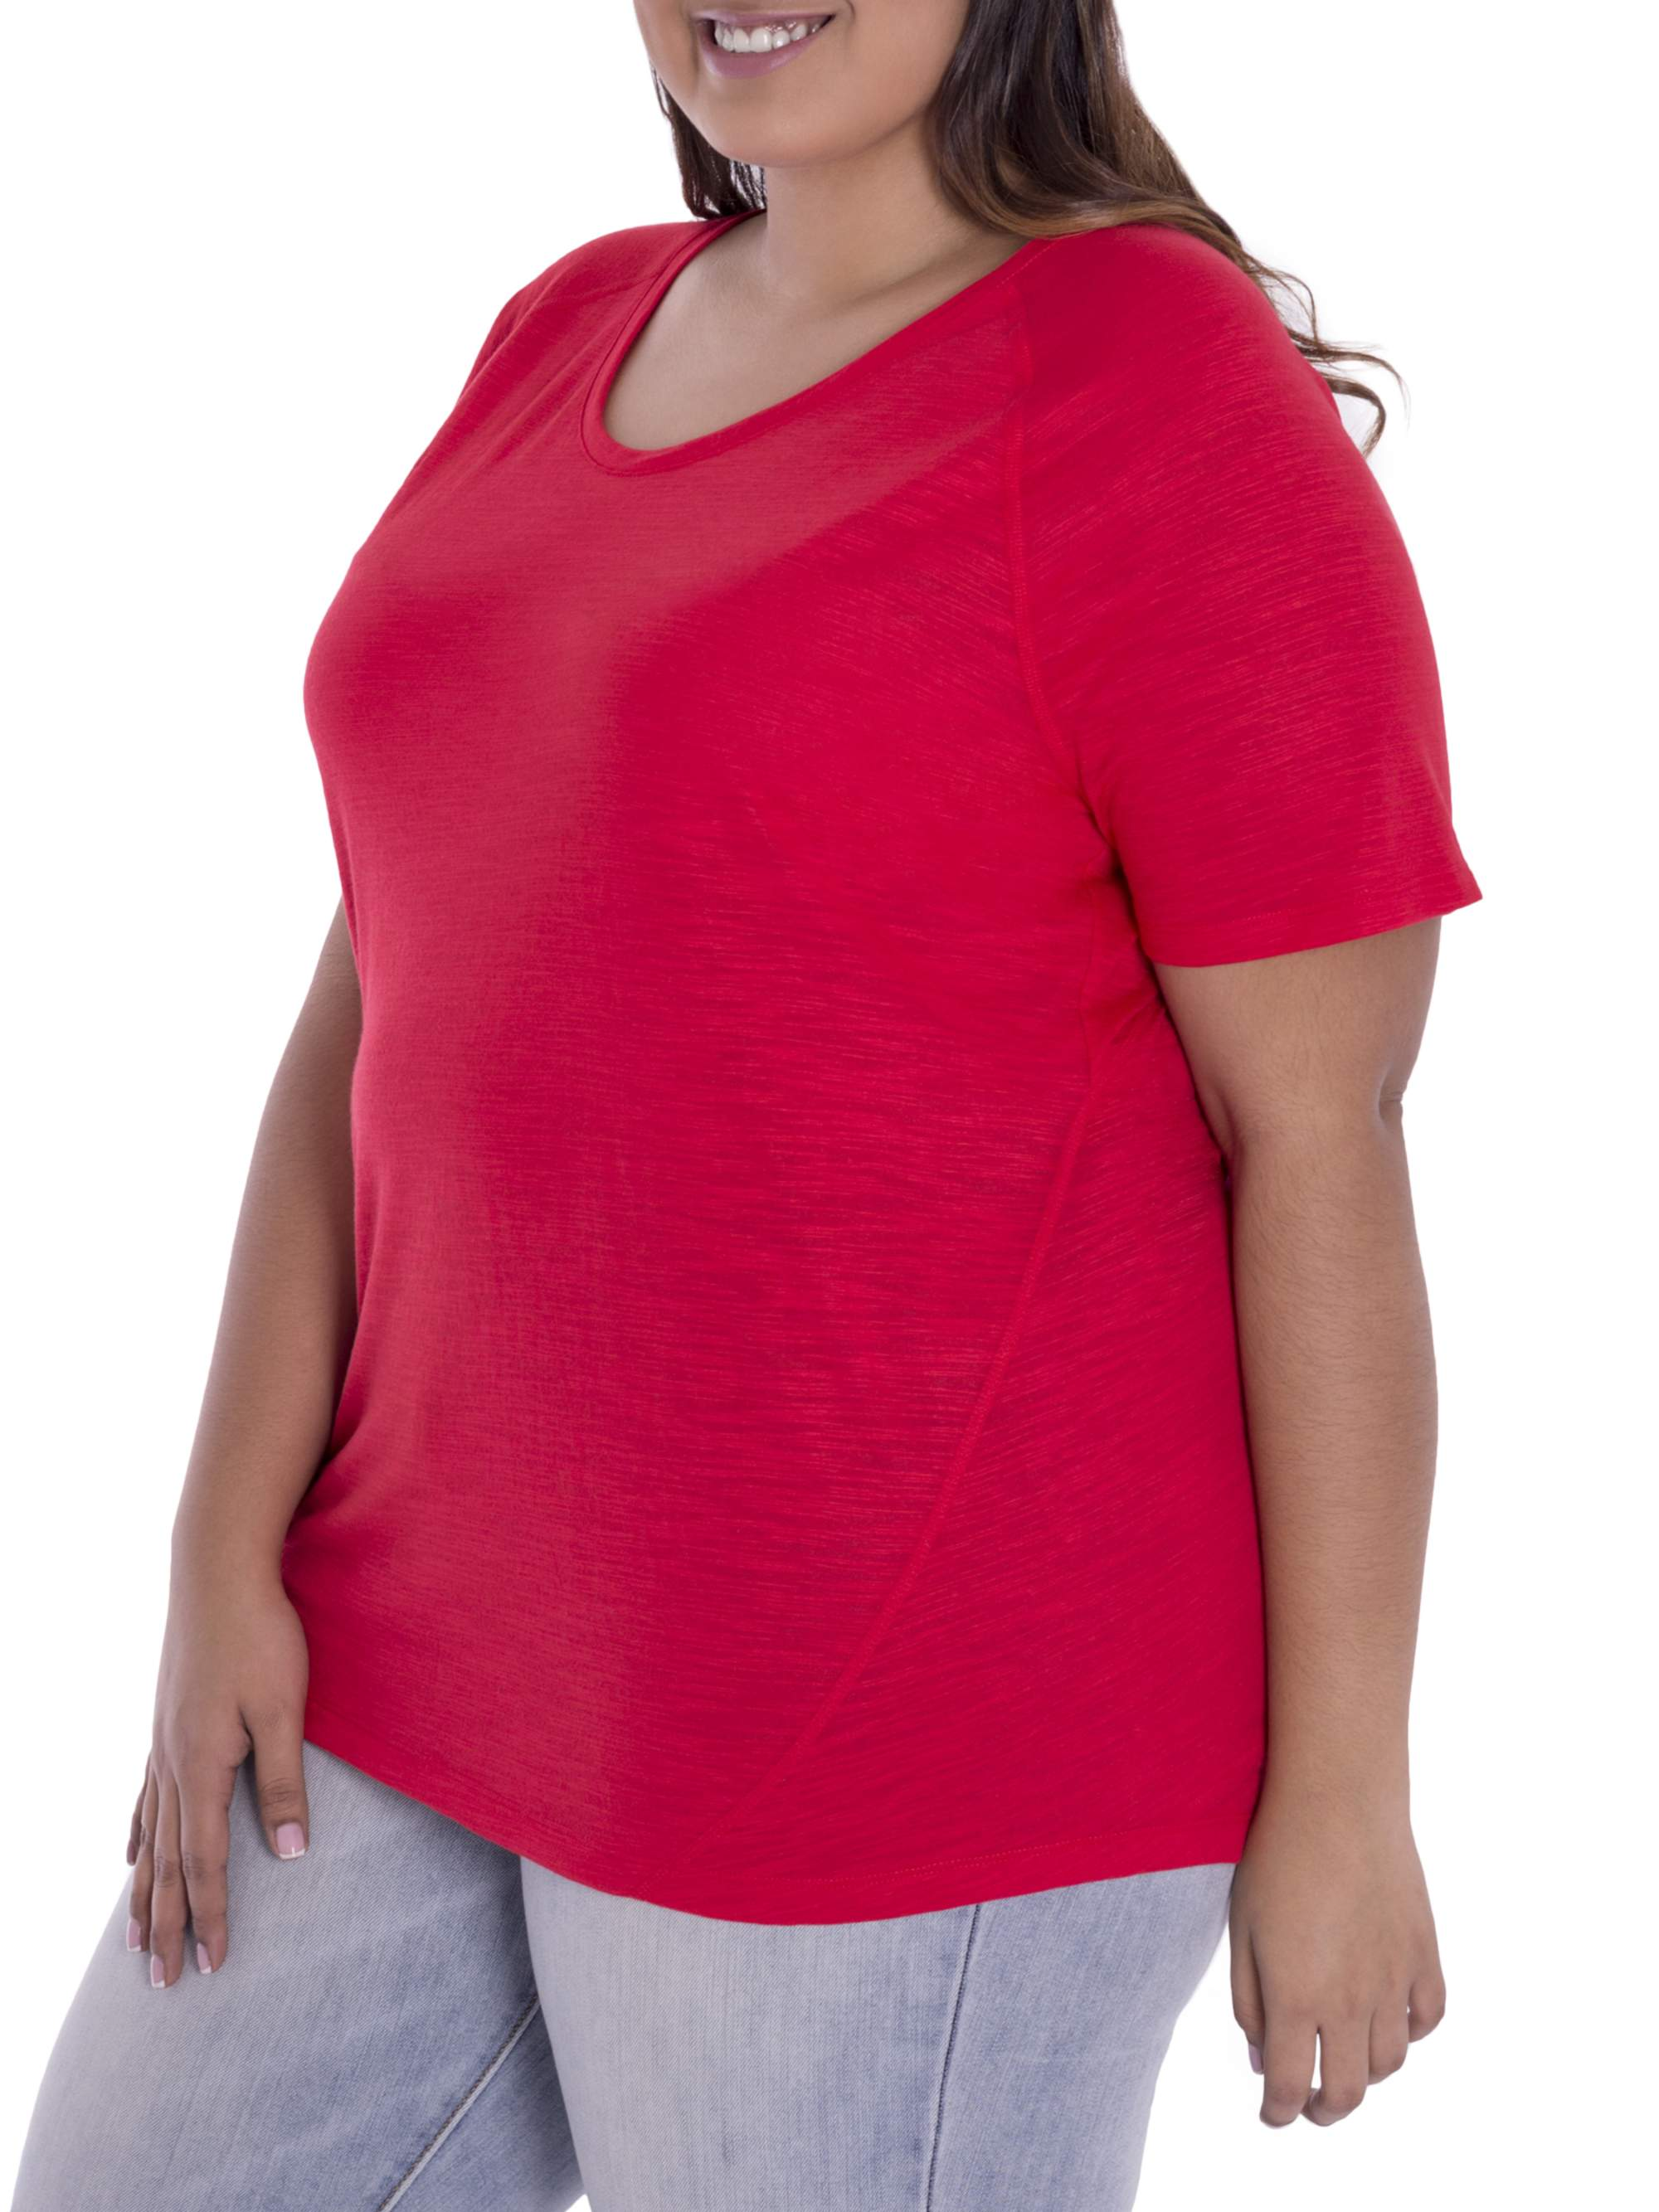 Terra & Sky Women's Plus Size Casual Short Sleeve Tee